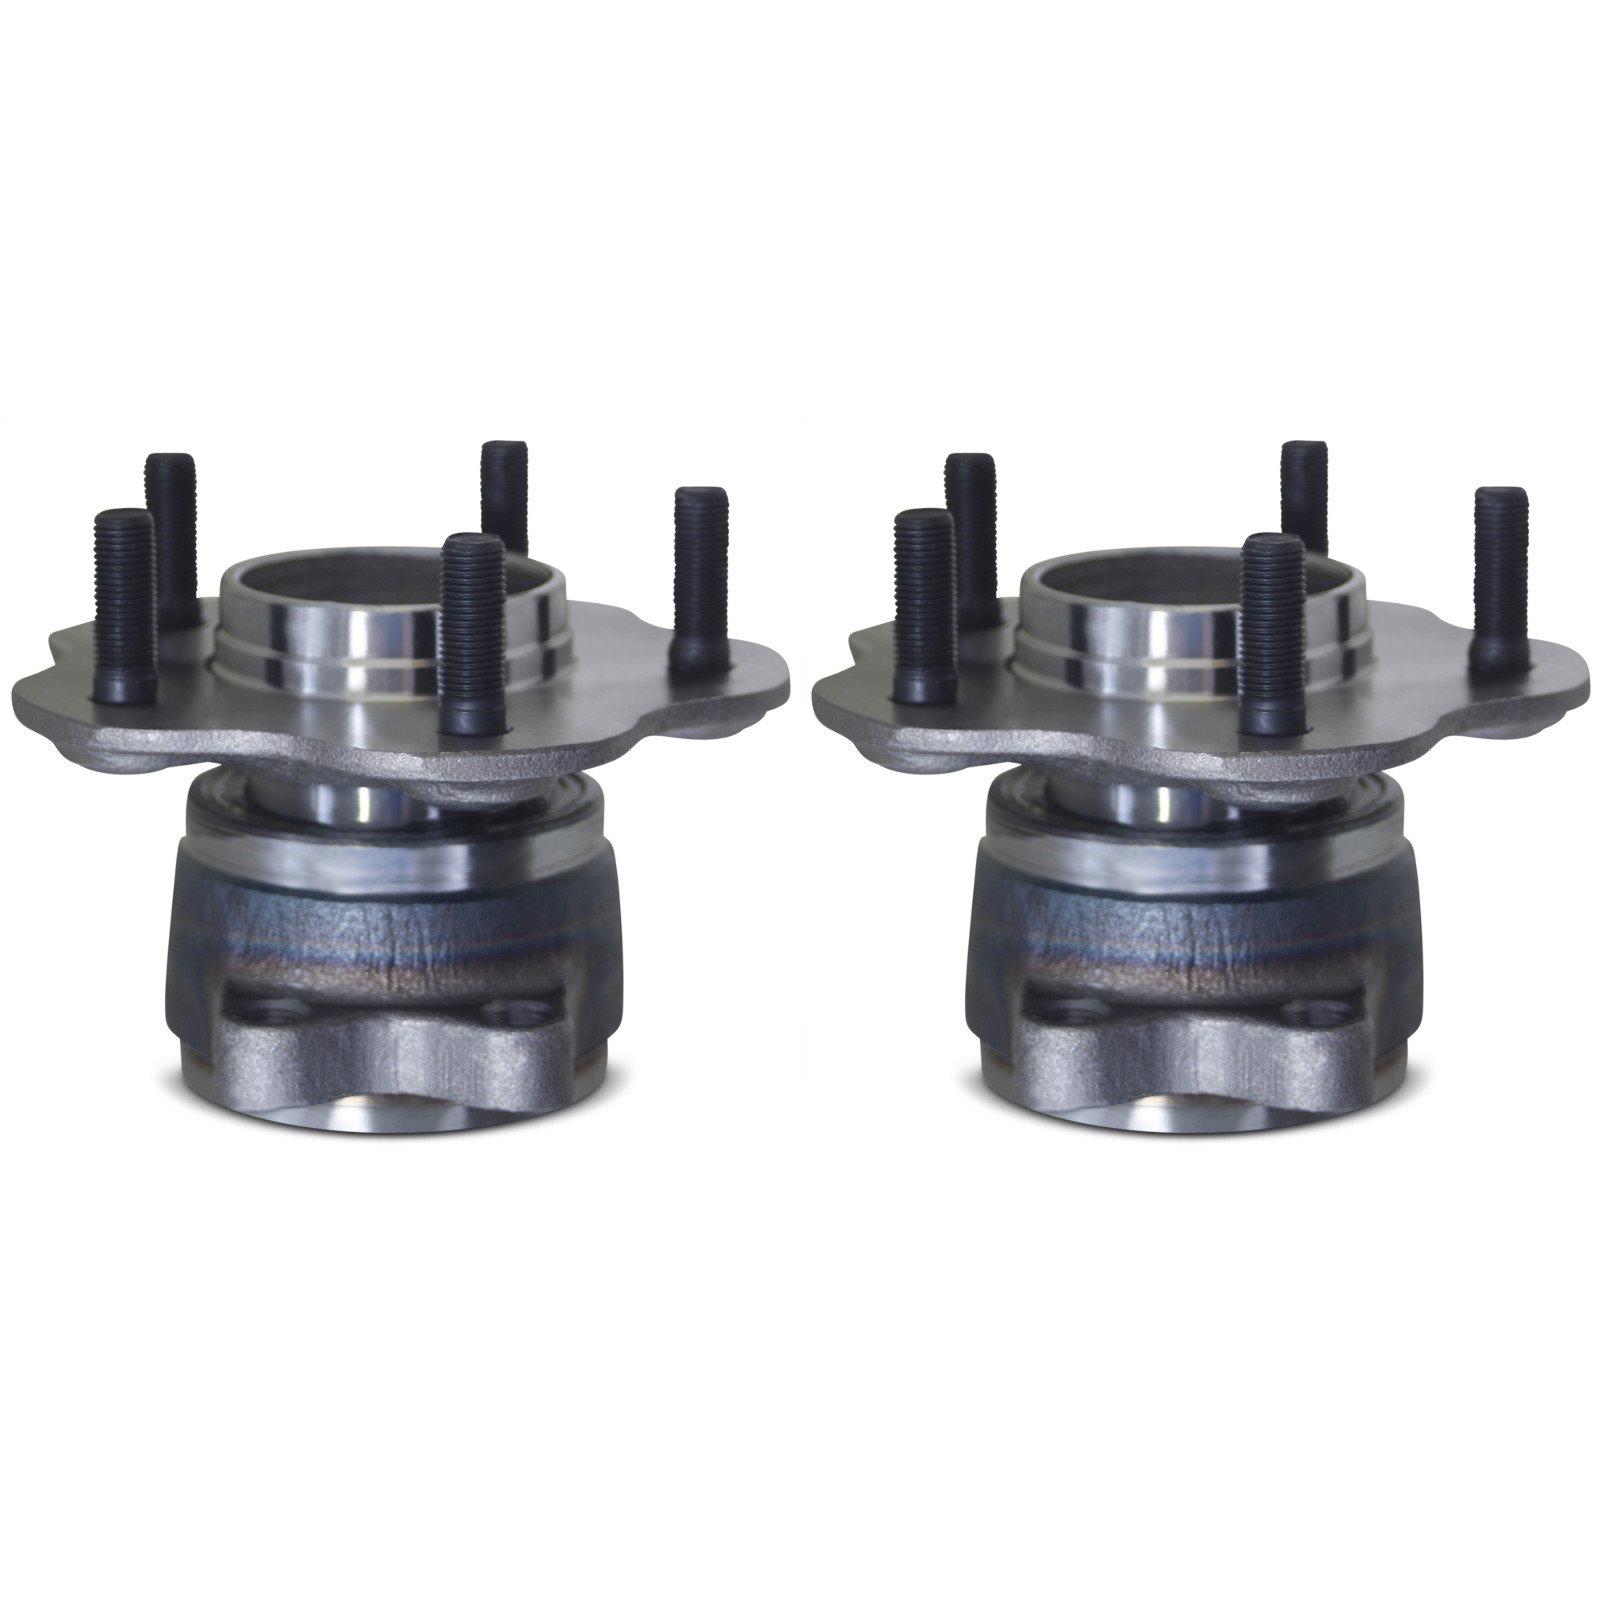 Tomegun 4 to 5 Lug Wheel Bearing Conversion Hub Rear Pair For 89-99 S13/S14 Nissan 240SX by Tomegun (Image #1)